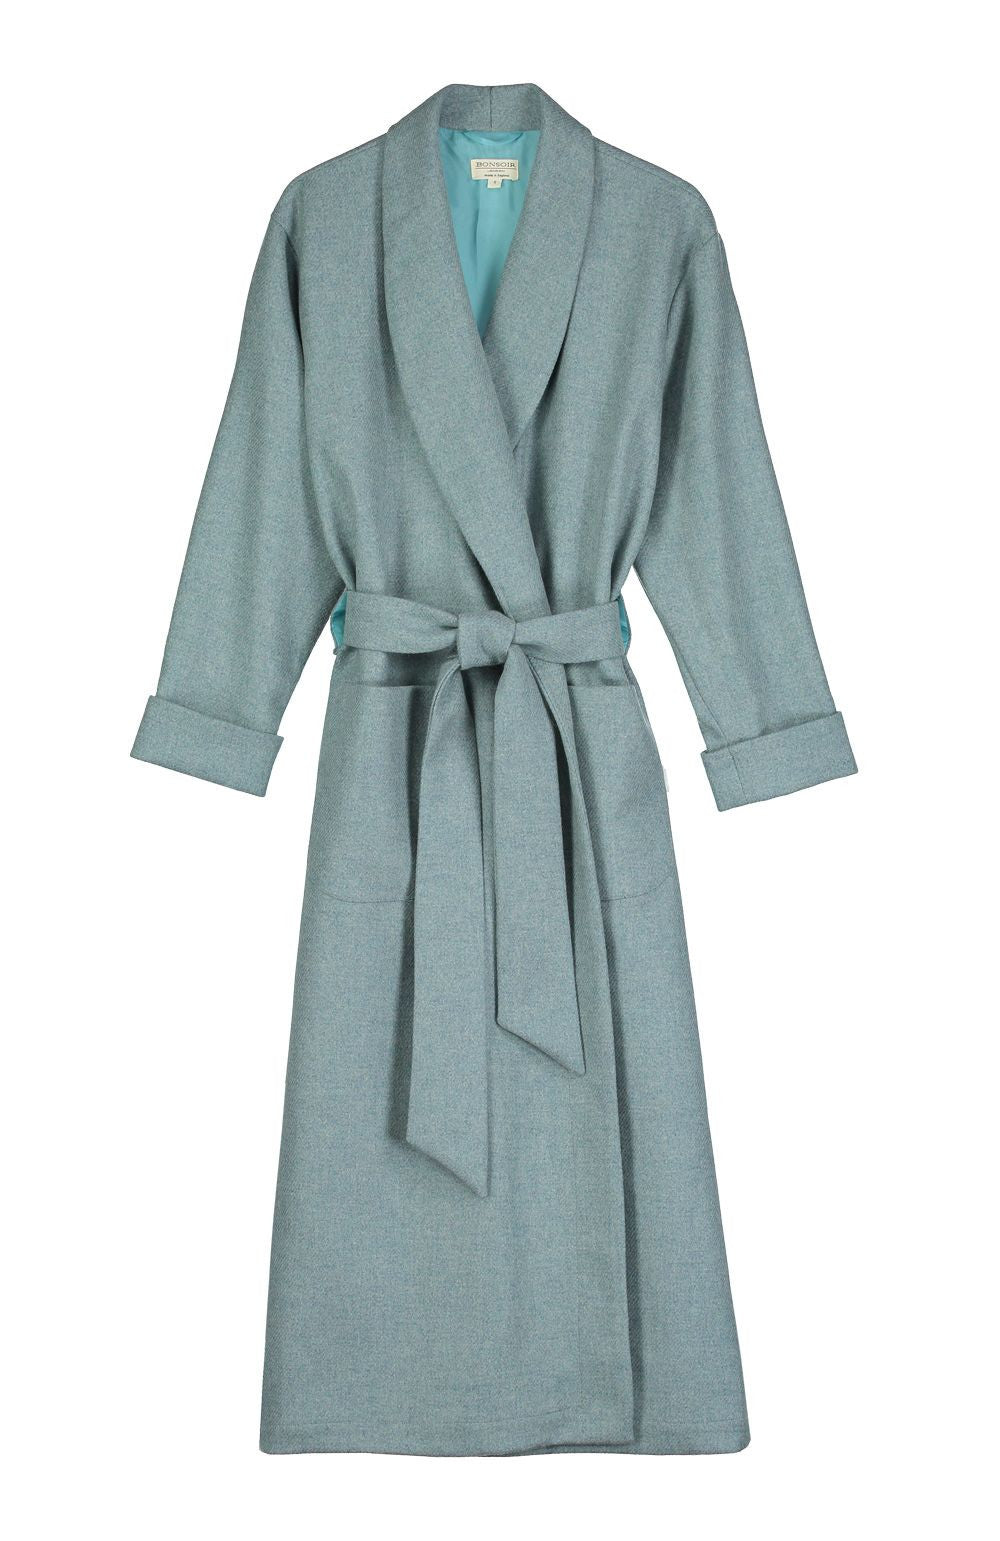 Silk-Lined Wool Robe (wlld)- Aqua